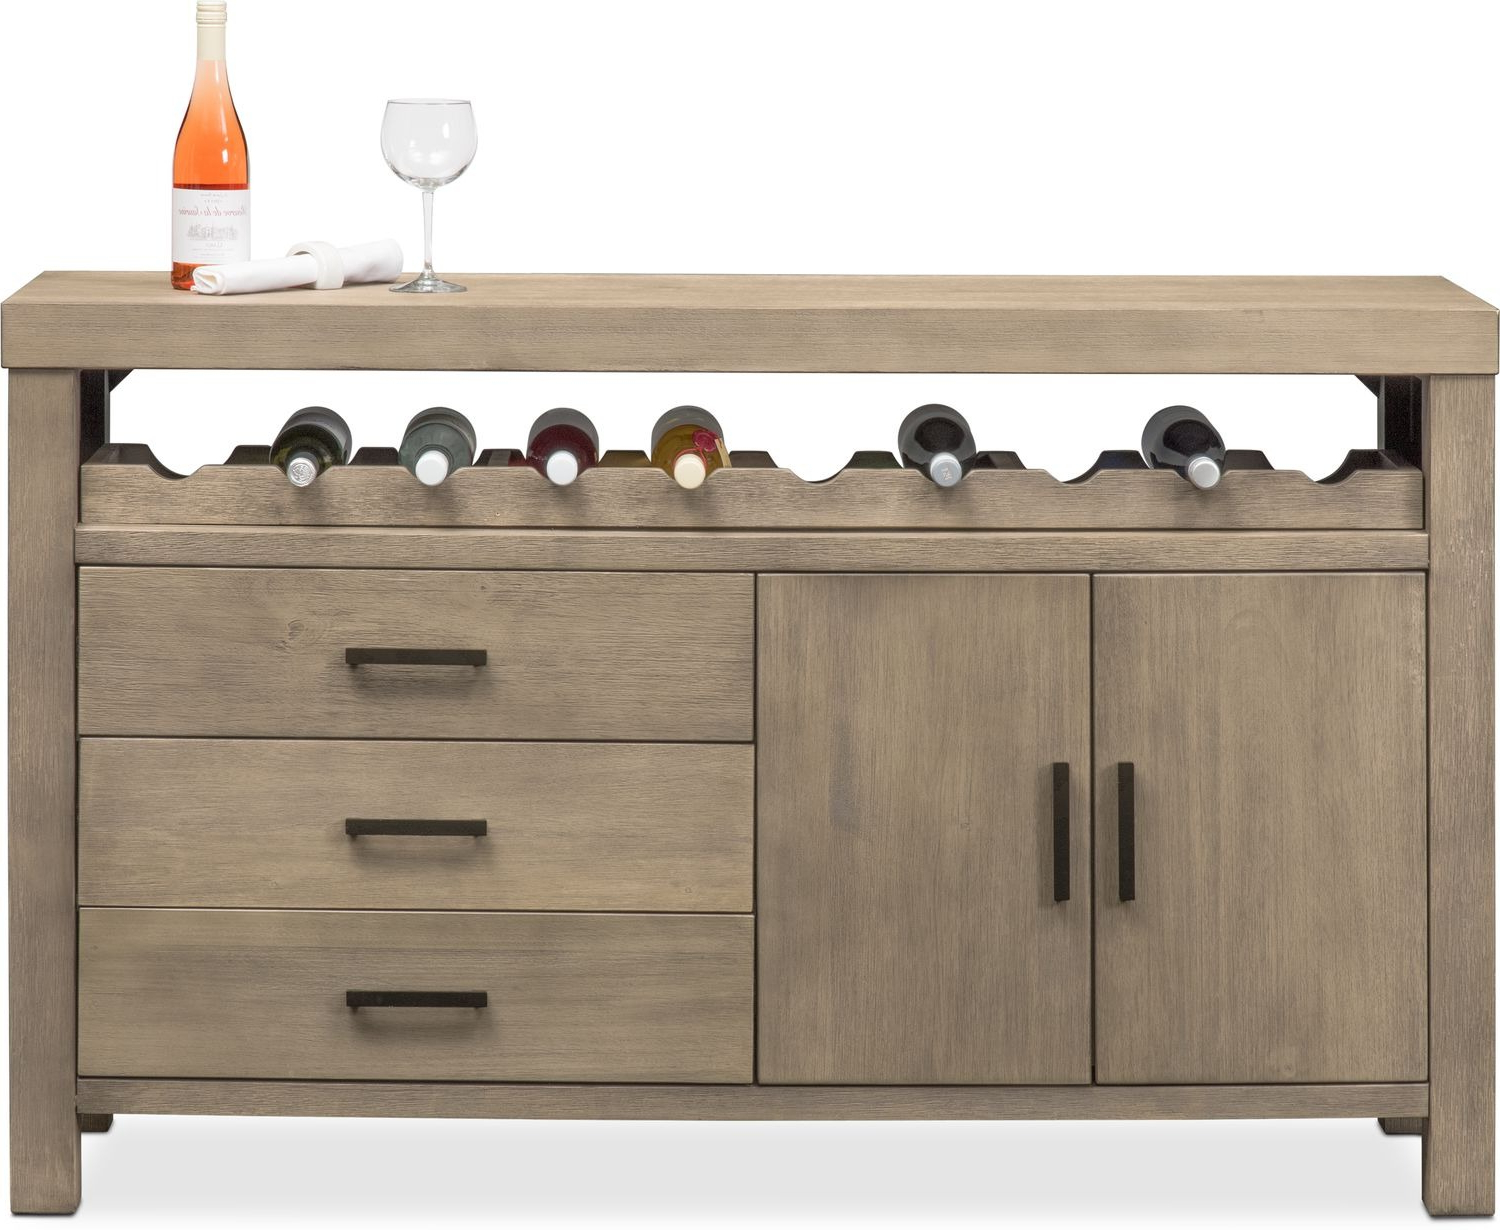 Tribeca Sideboard – Gray Intended For Tribeca Sideboards (View 3 of 20)